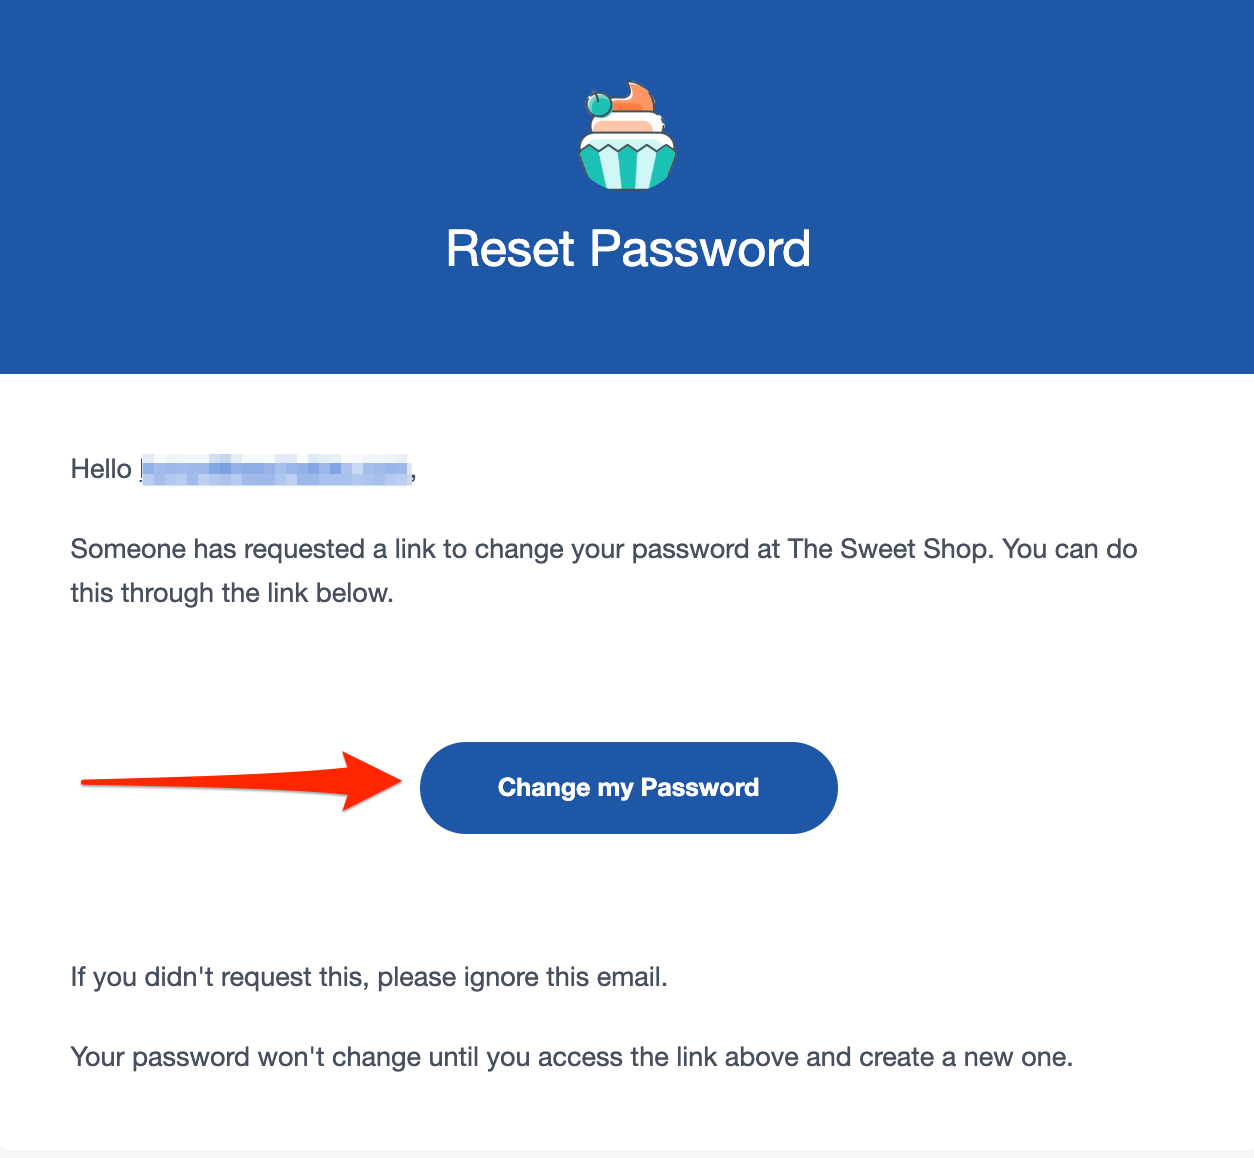 Reset-Password-Instructions-email.png